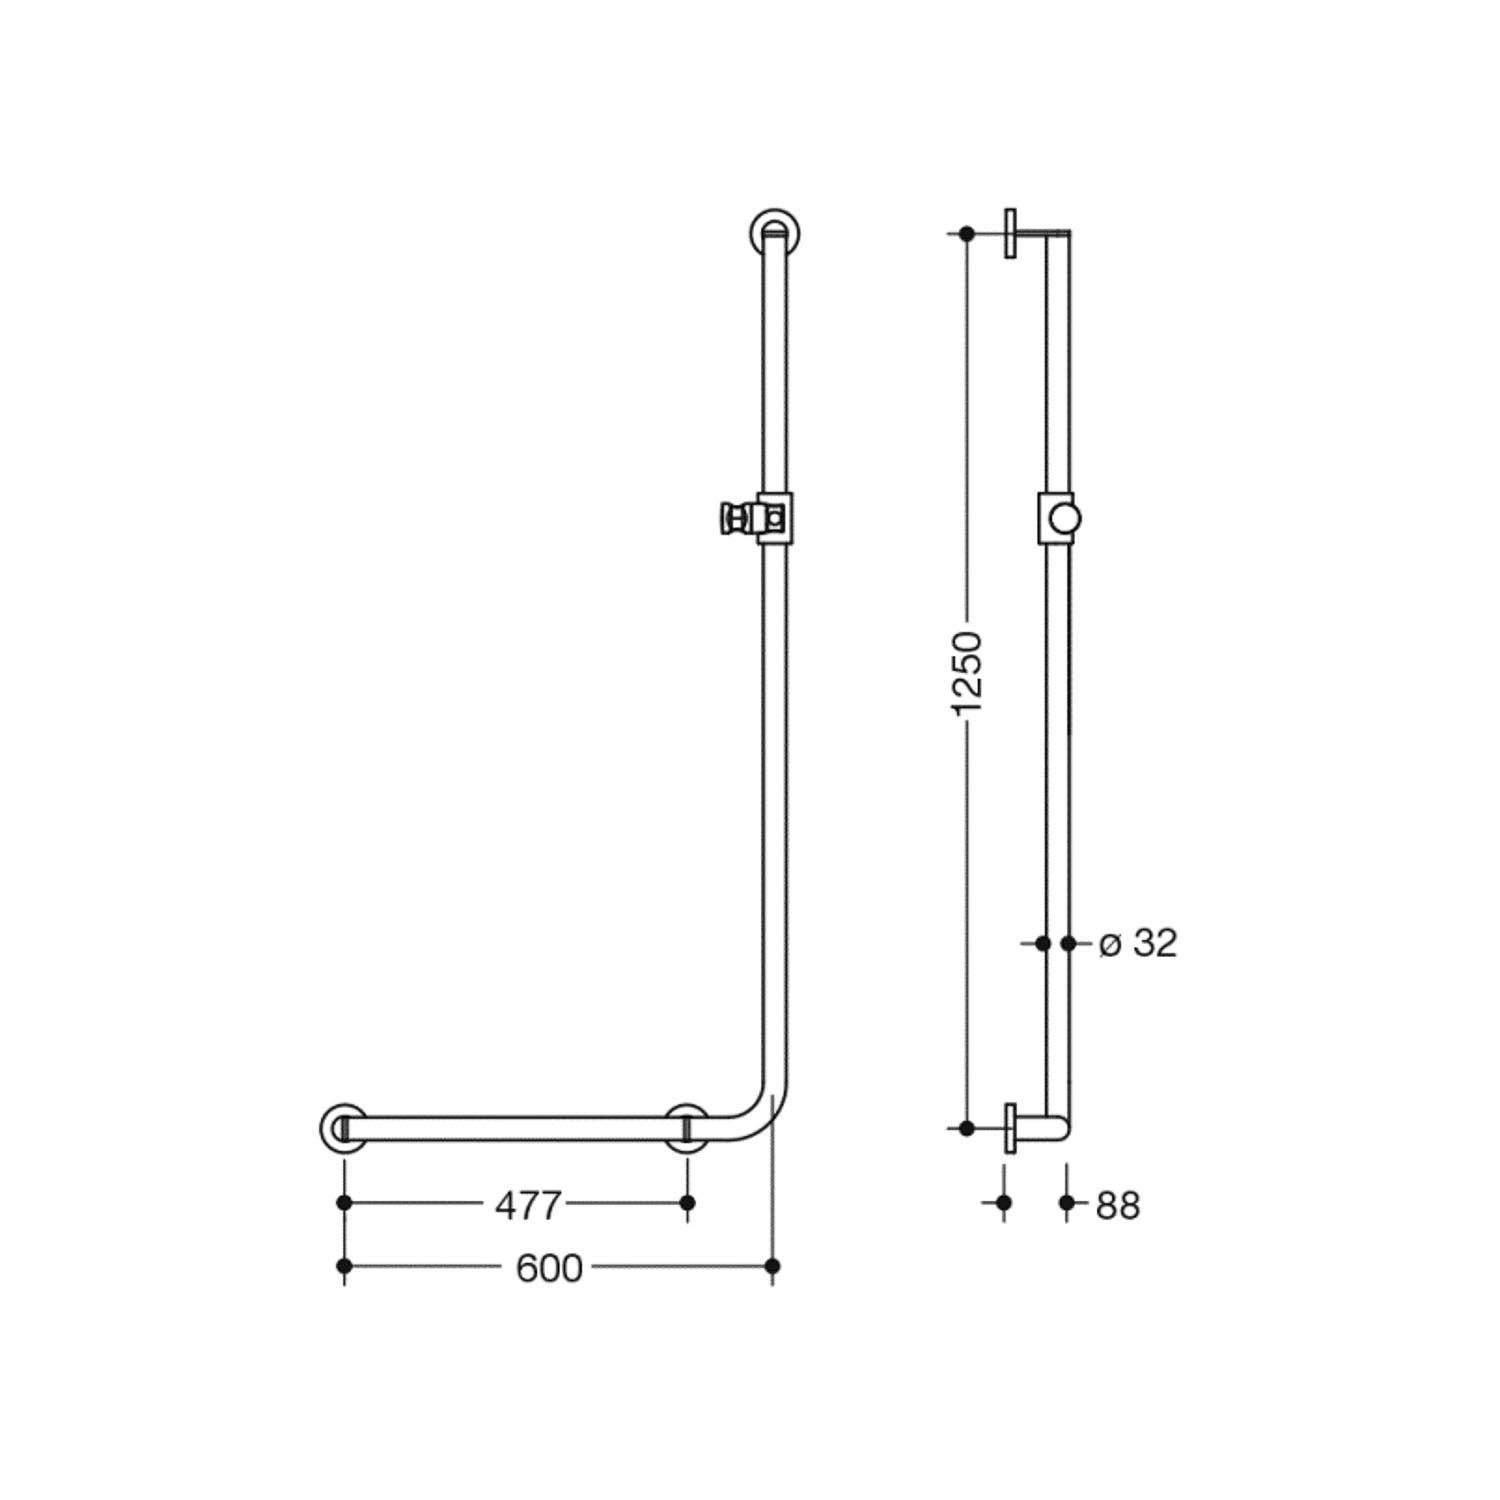 1250x600mm Left Handed Freestyle Supportive L Shaped Shower Rail with a satin steel finish dimensional drawing